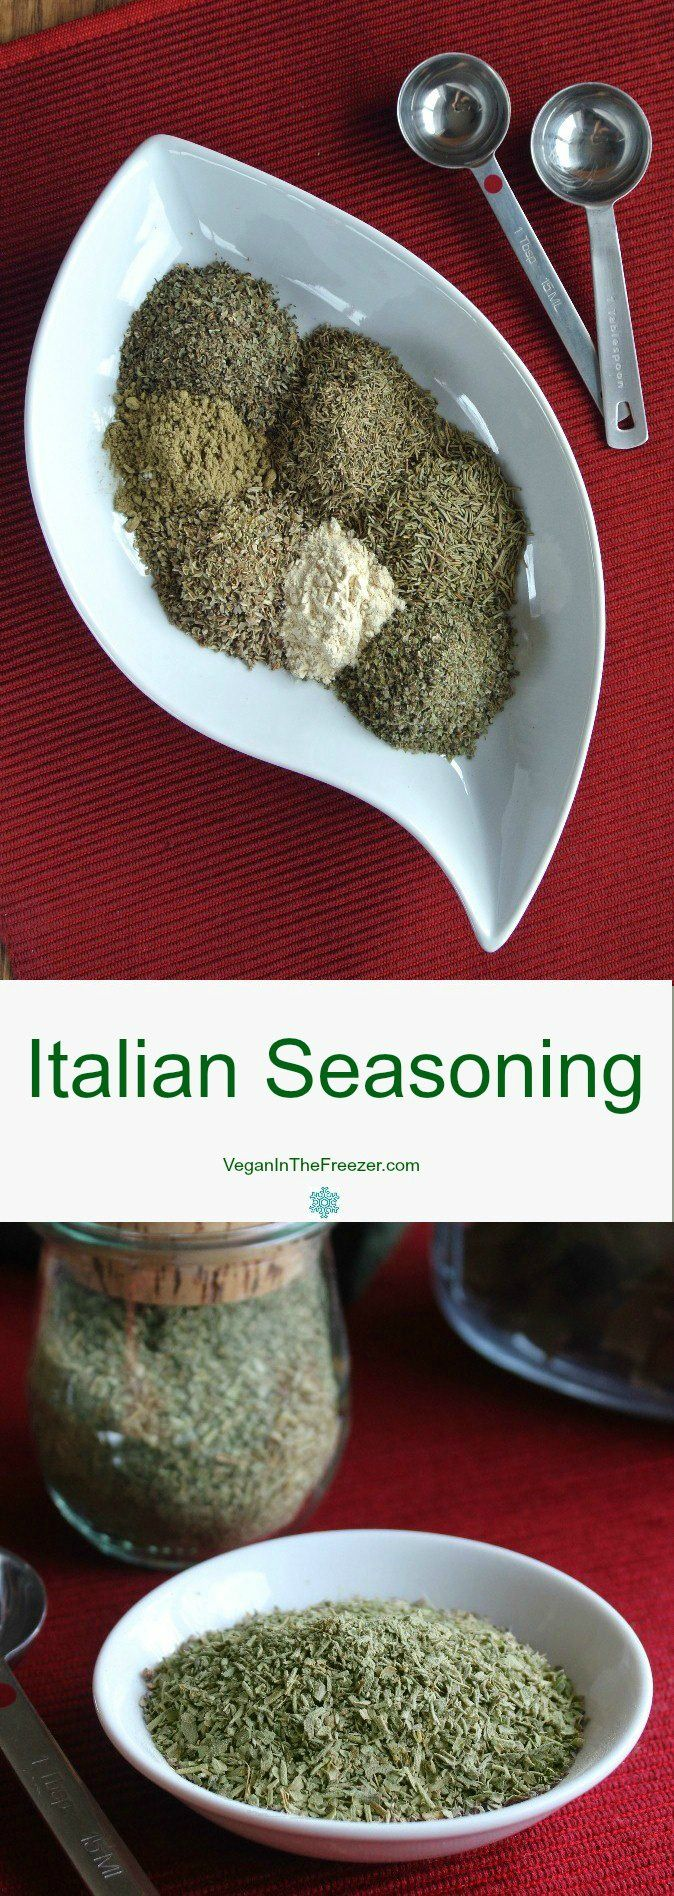 Italian seasoning adds so much to a sauce or casserole.  You probably have all of the ingredients in your cupboard already so check it out.  It only takes a little measuring and you are done.